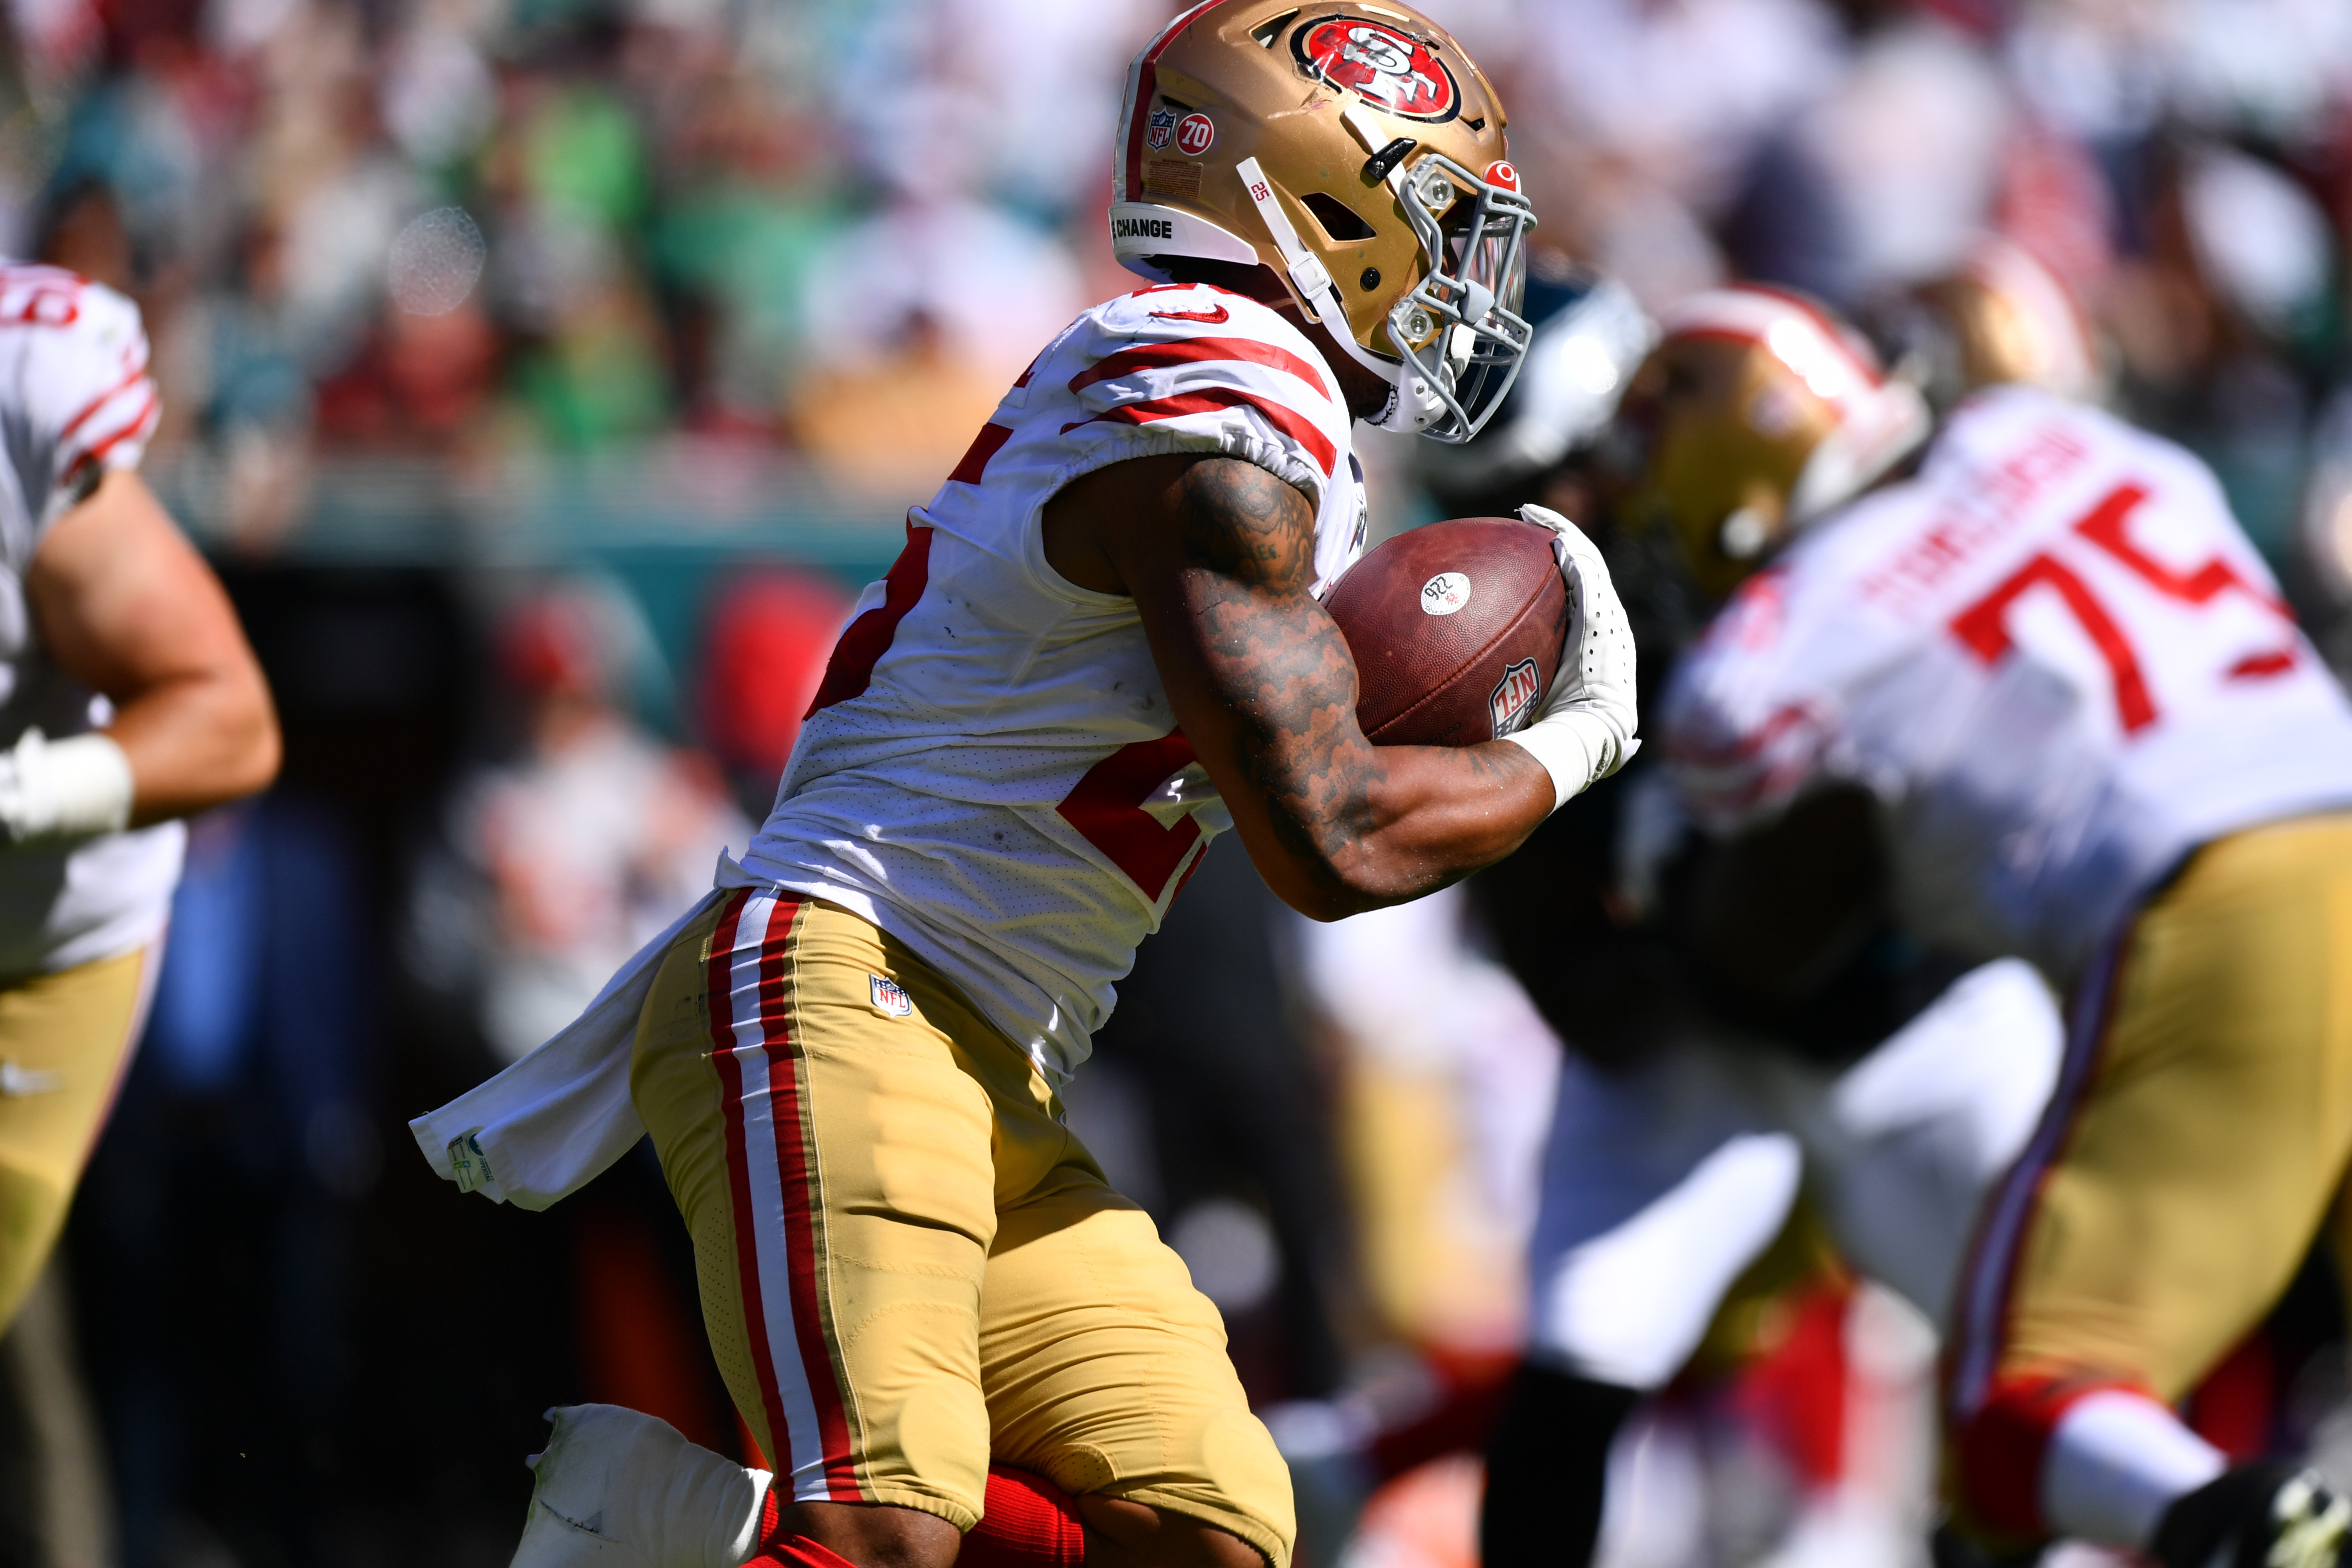 San Francisco 49ers RB Elijah Mitchell (25) carries the ball in the second half during the game between the San Francisco 49ers and Philadelphia Eagles on September 19, 2021 at Lincoln Financial Field in Philadelphia, PA.